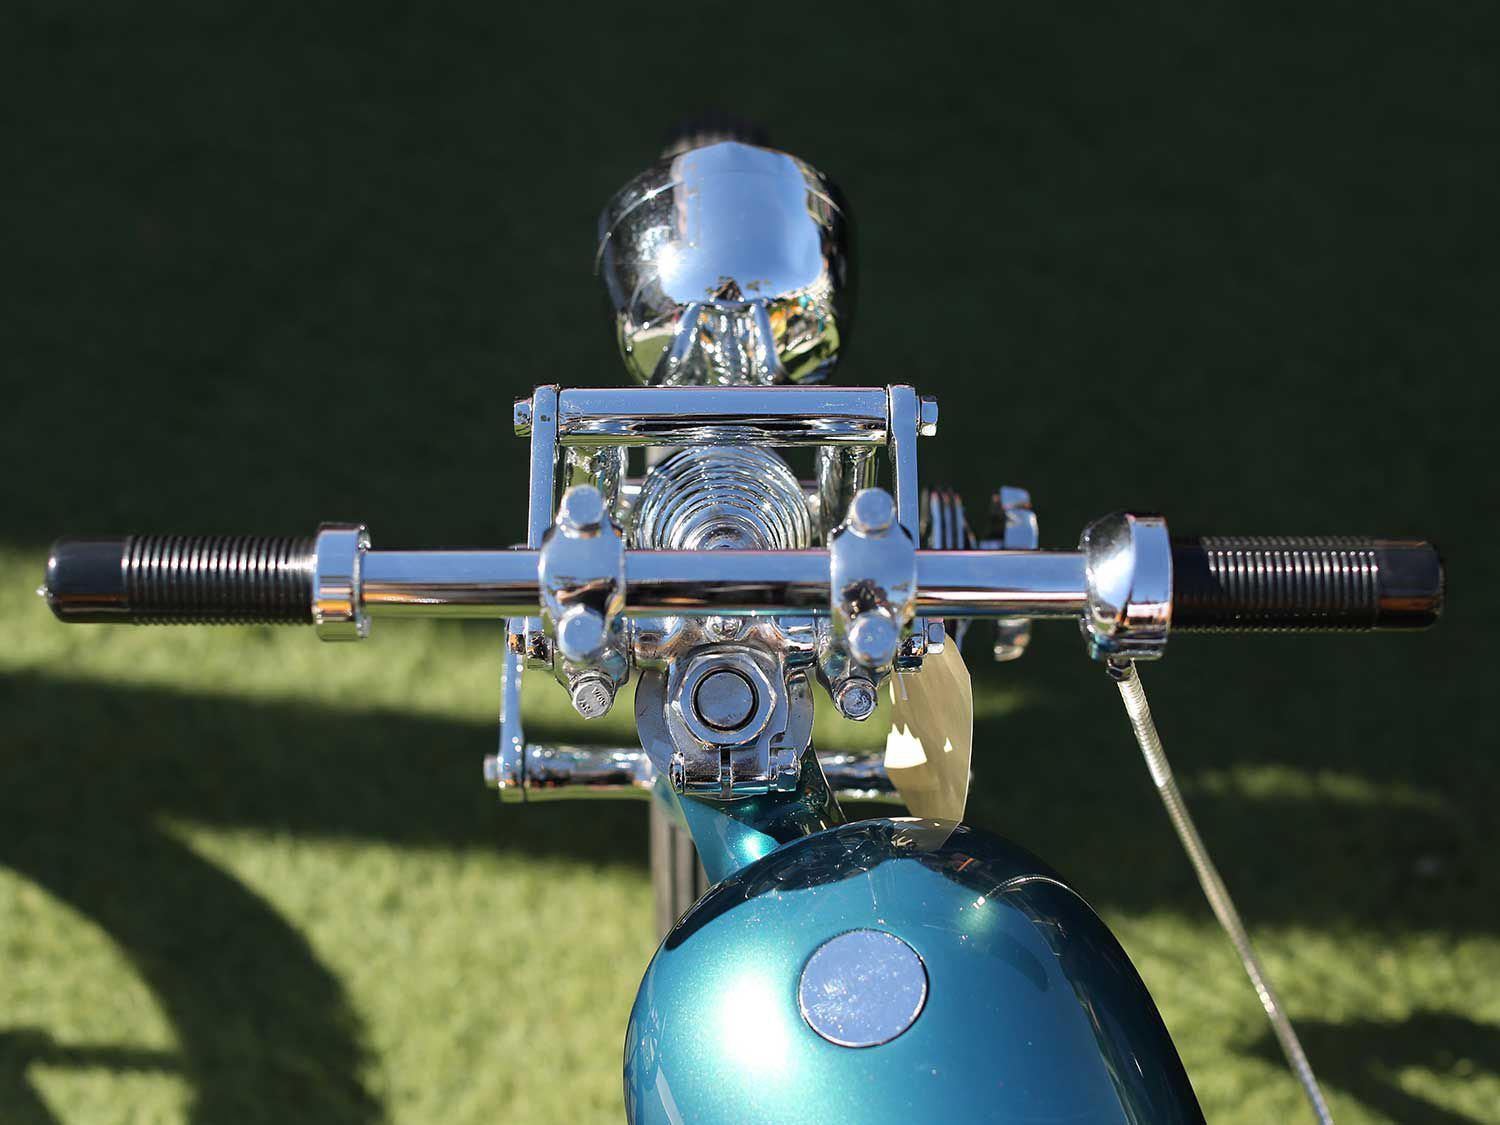 A clean and polished handlebar and front end setup on this skinny Panhead chopper.